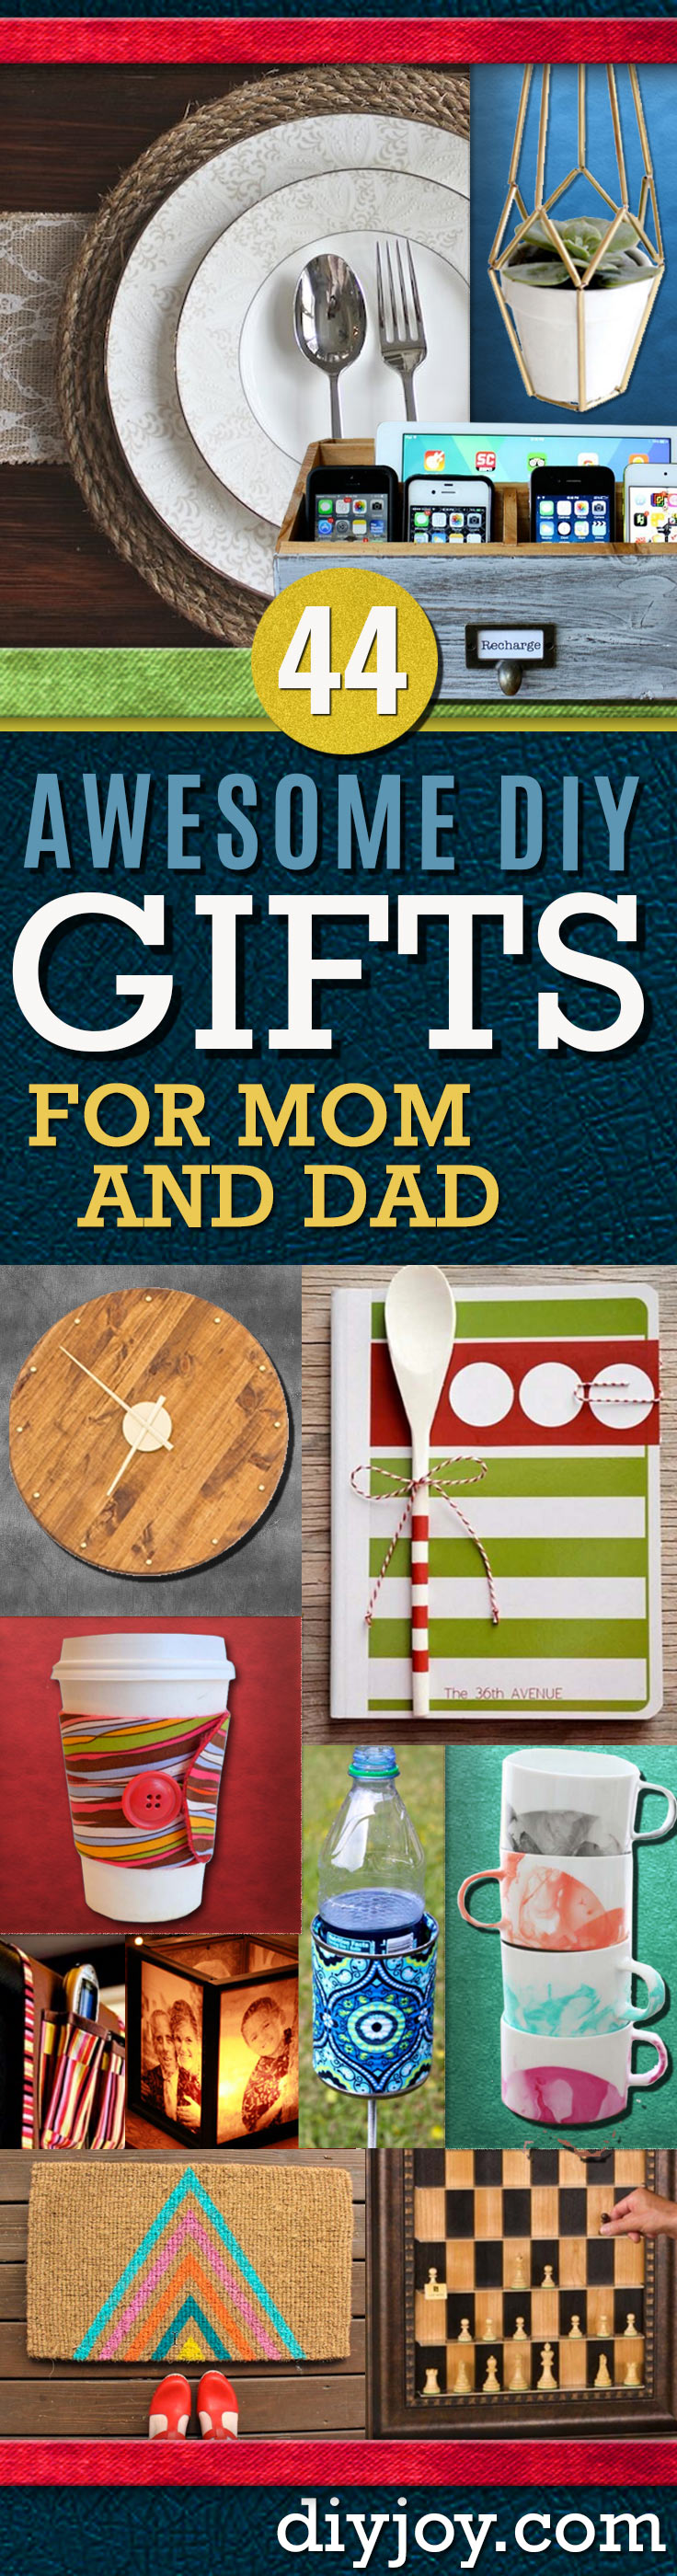 DIY Gifts for Mom and Dad - Homemade Christmas Gift Ideas for Your Parents. Cool  sc 1 st  DIY Joy : cool christmas gift for dad - medton.org